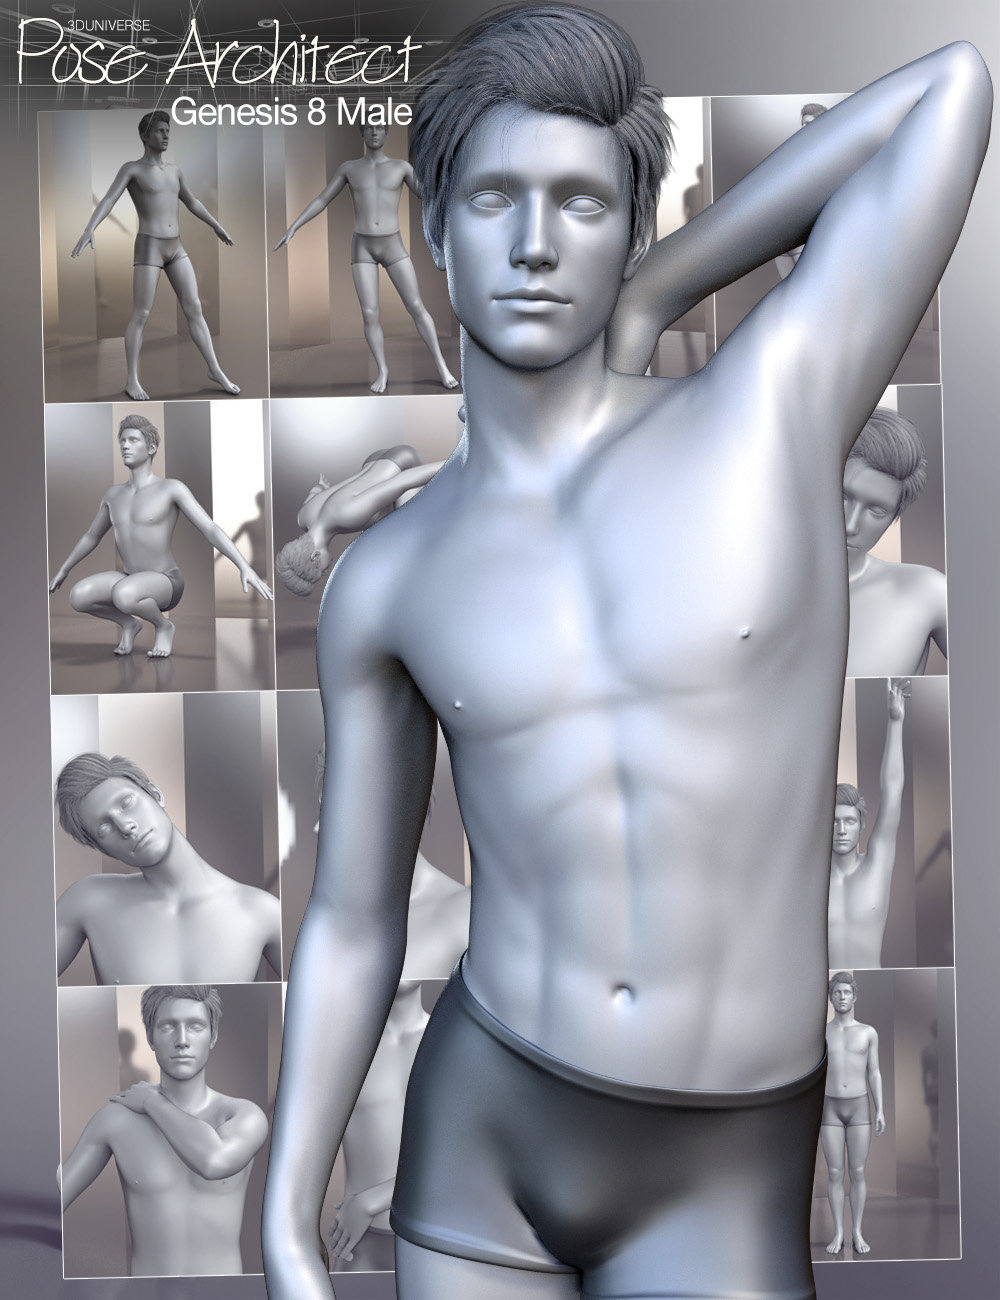 Pose Architect for Genesis 8 Male(s) by: 3D Universe, 3D Models by Daz 3D